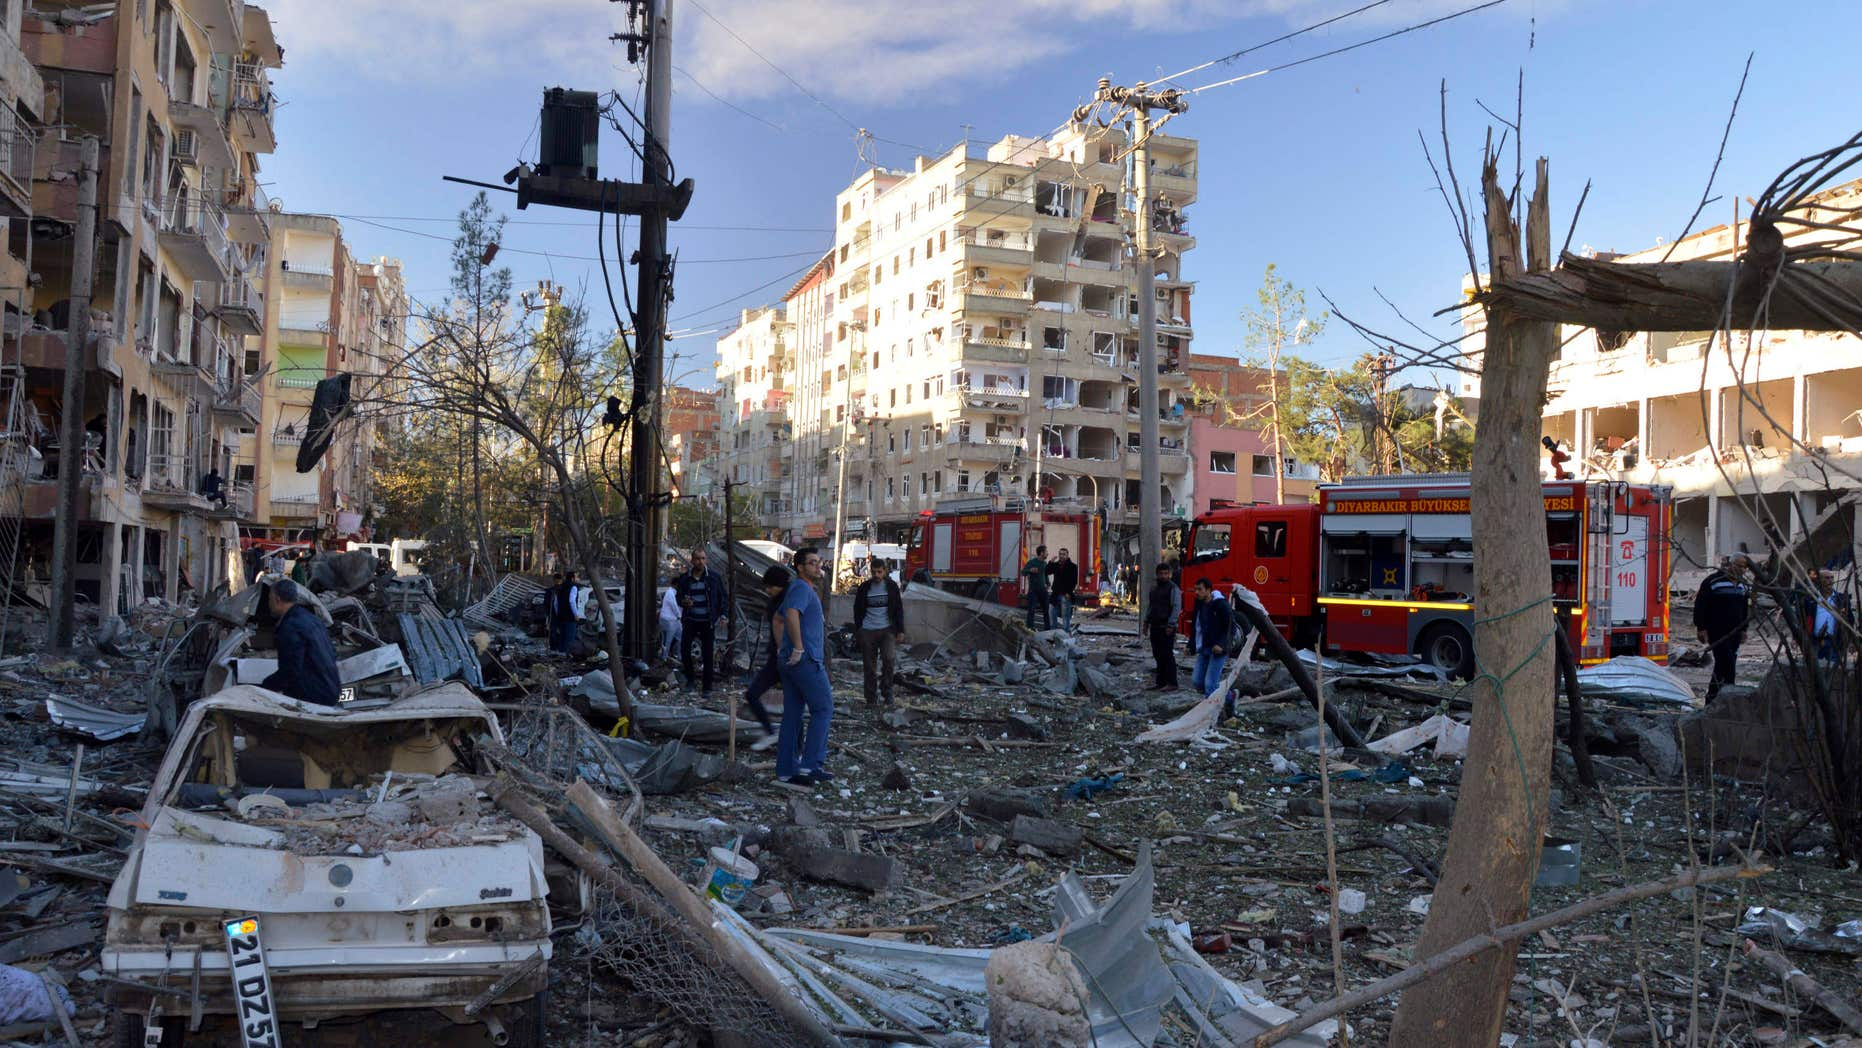 Nov. 4, 2016: People watch the damage after an explosion in southeastern Turkish city of Diyarbakir.